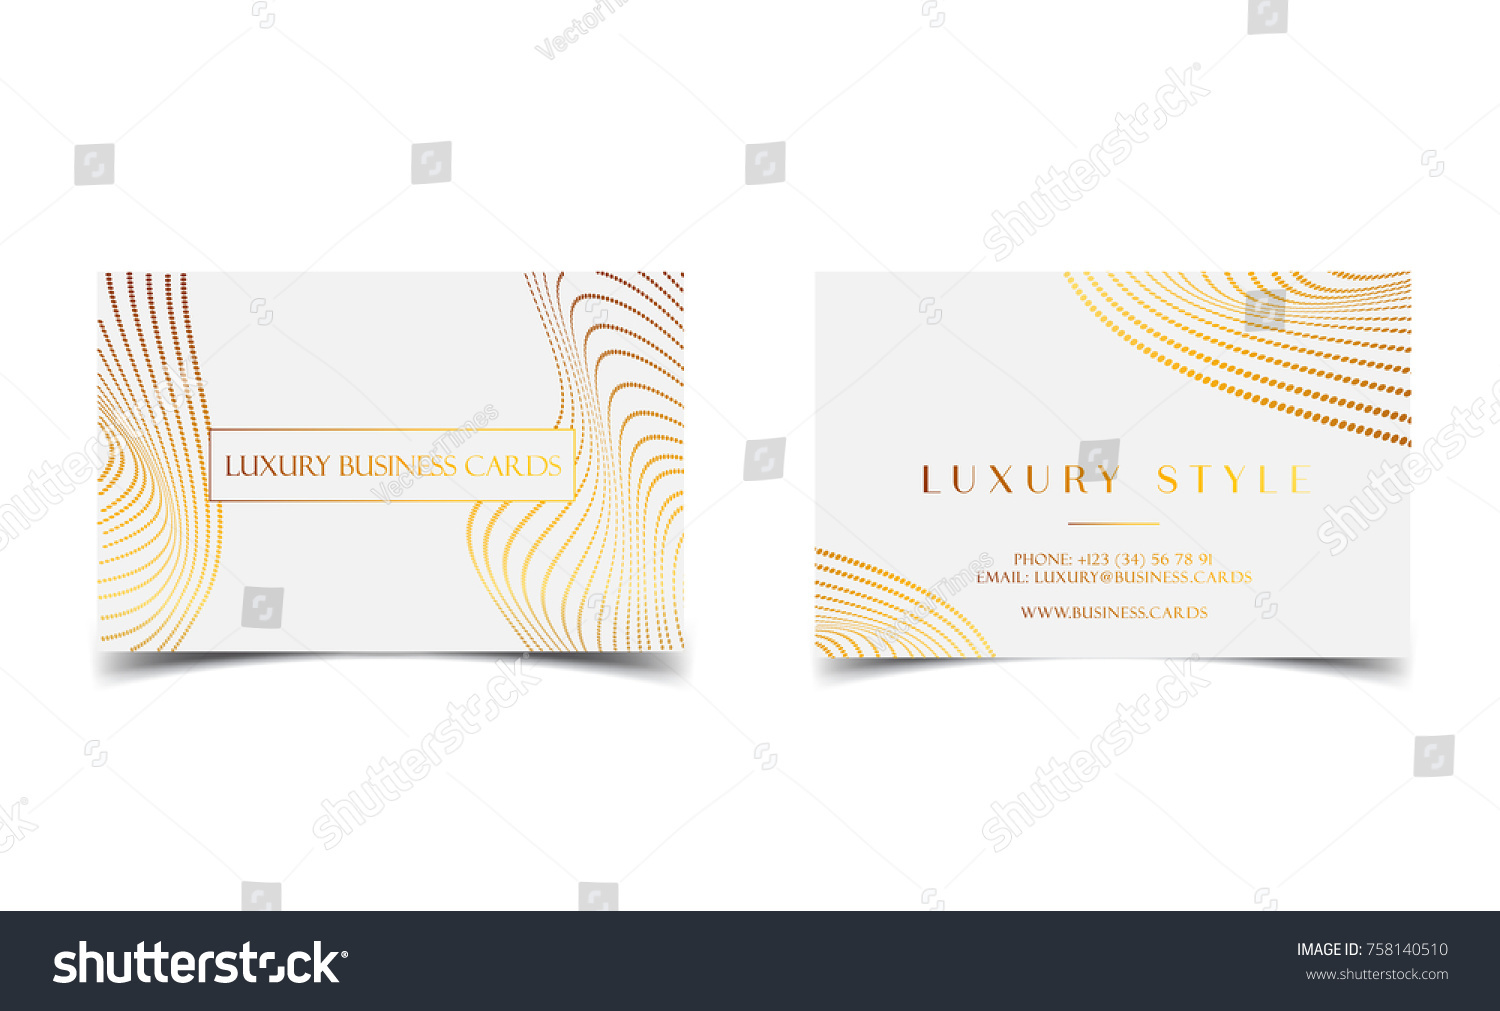 Season Greeting Cards For Business Images - Free Business Cards